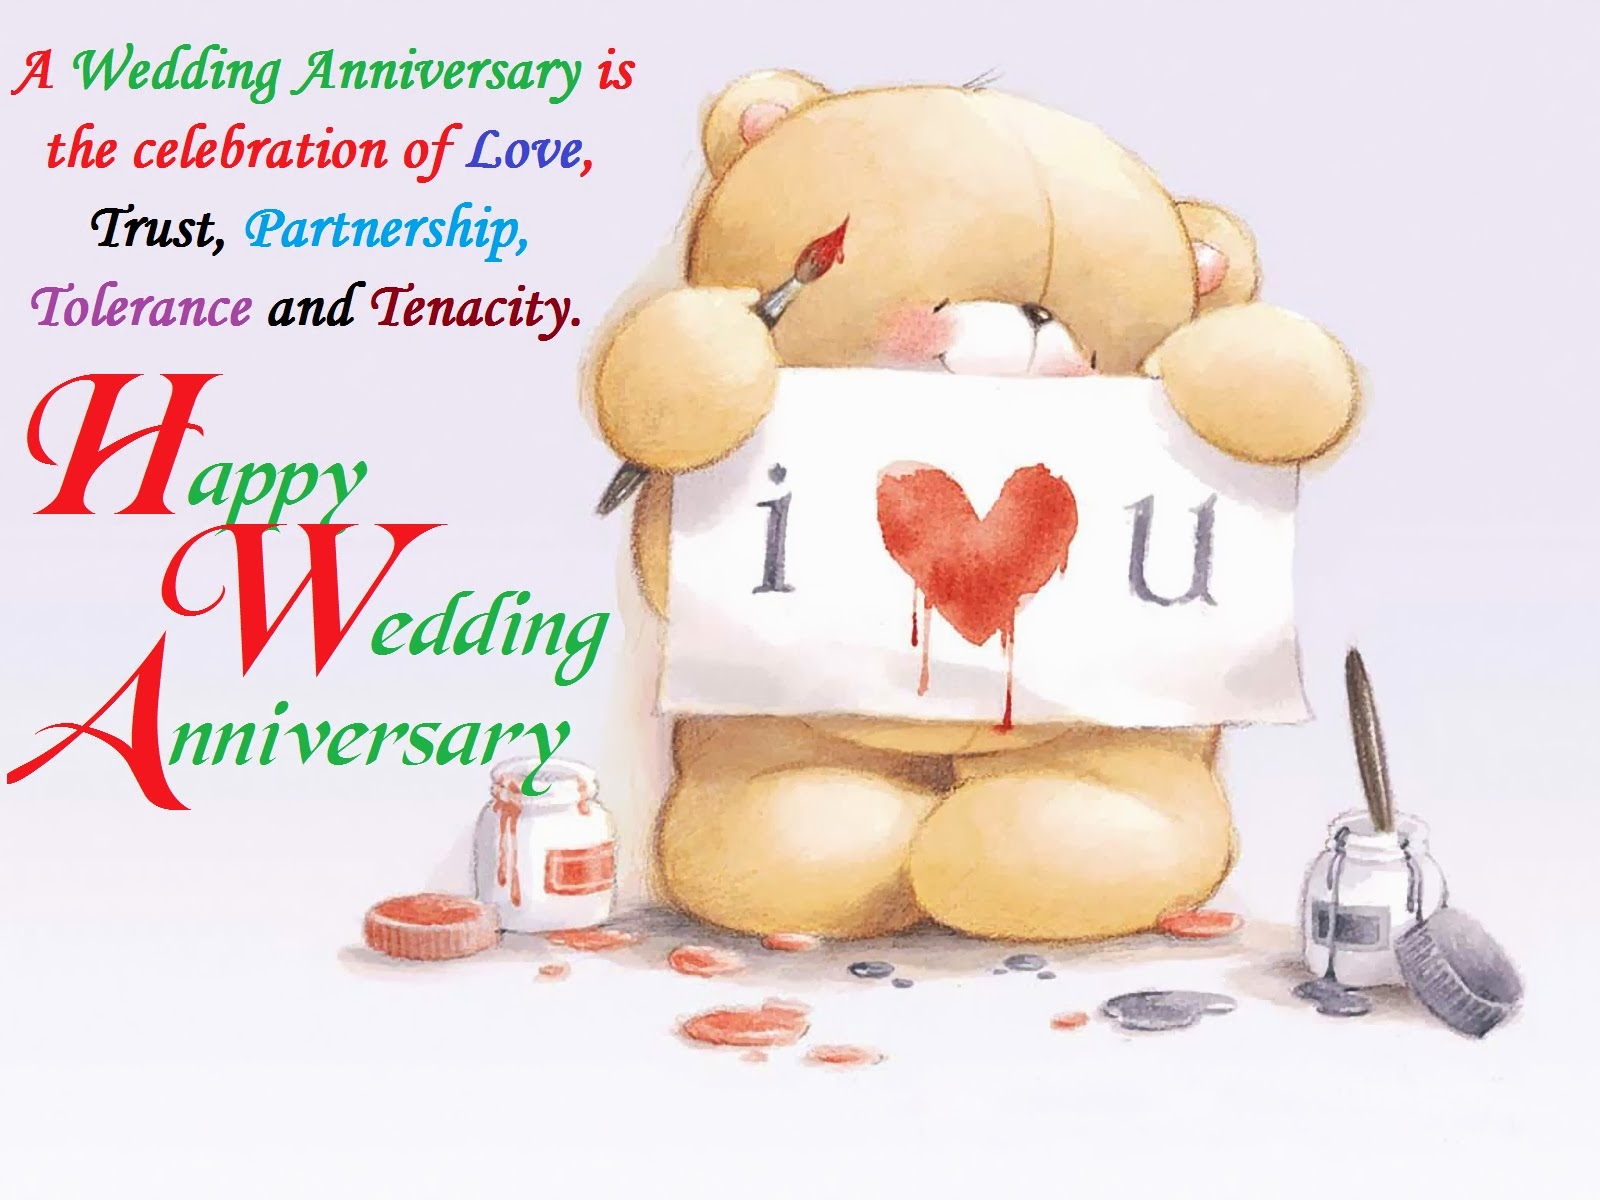 Wedding anniversary wishes for wife with sweet messages wedding wedding anniversary greetings for wife messages kristyandbryce Image collections